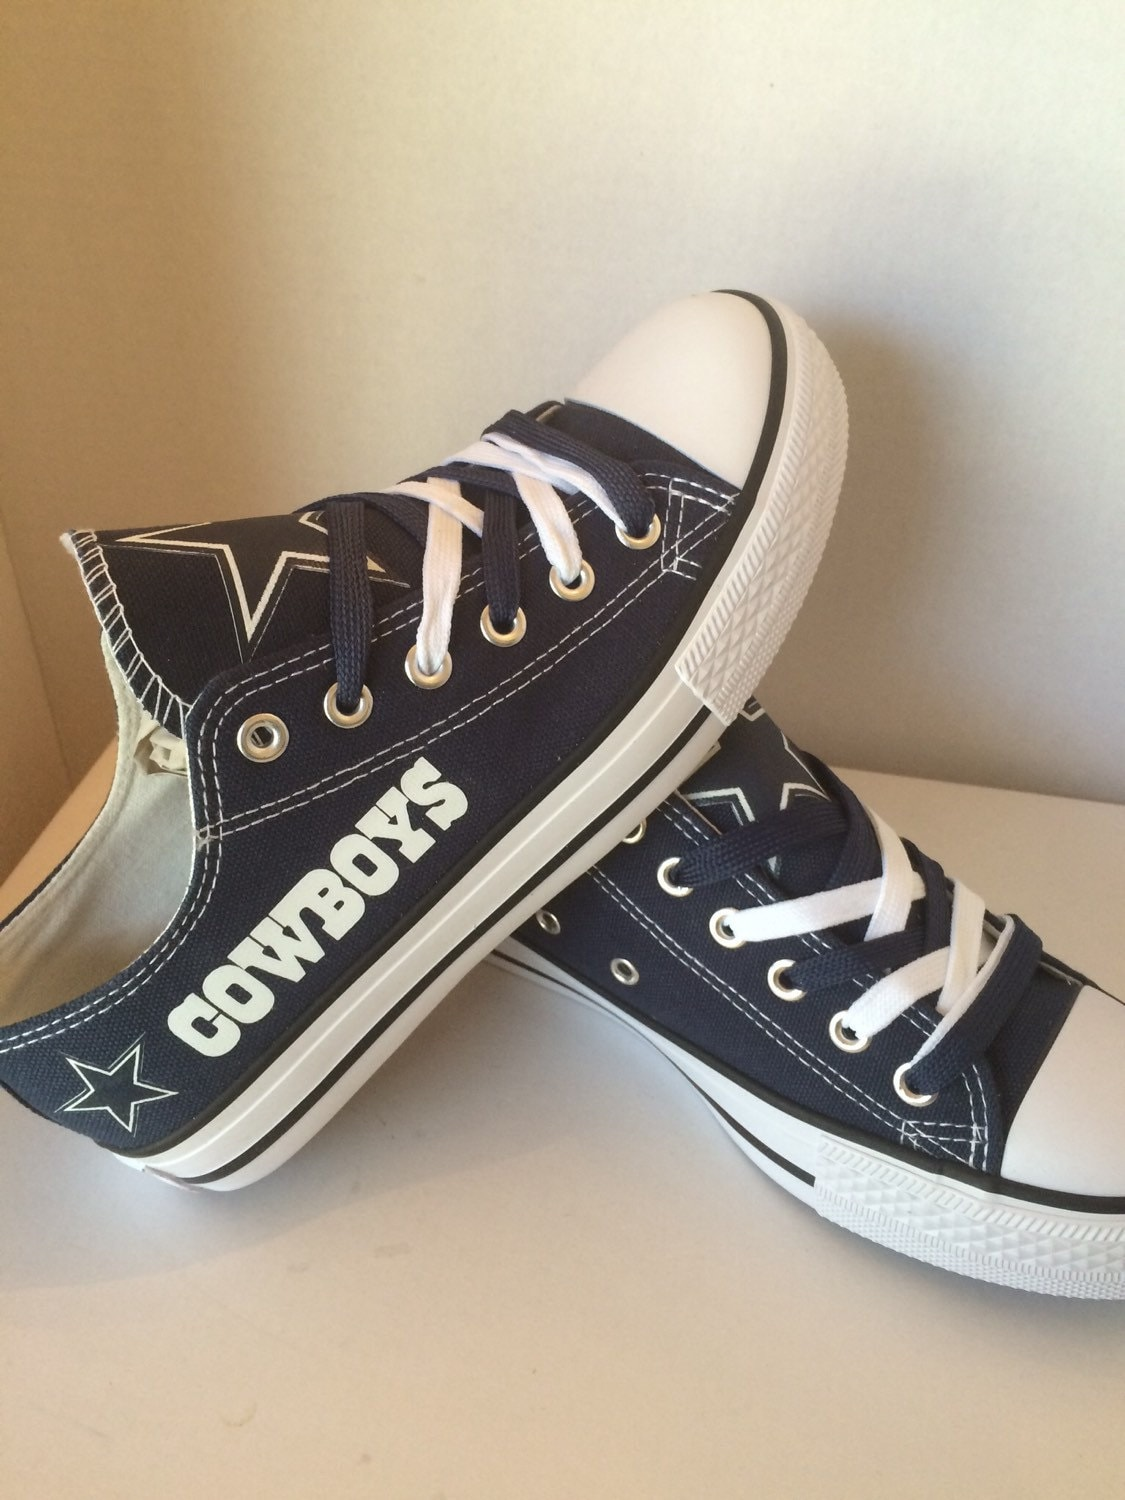 dallas cowboys mens and womens shoes by sportzshoeking on etsy